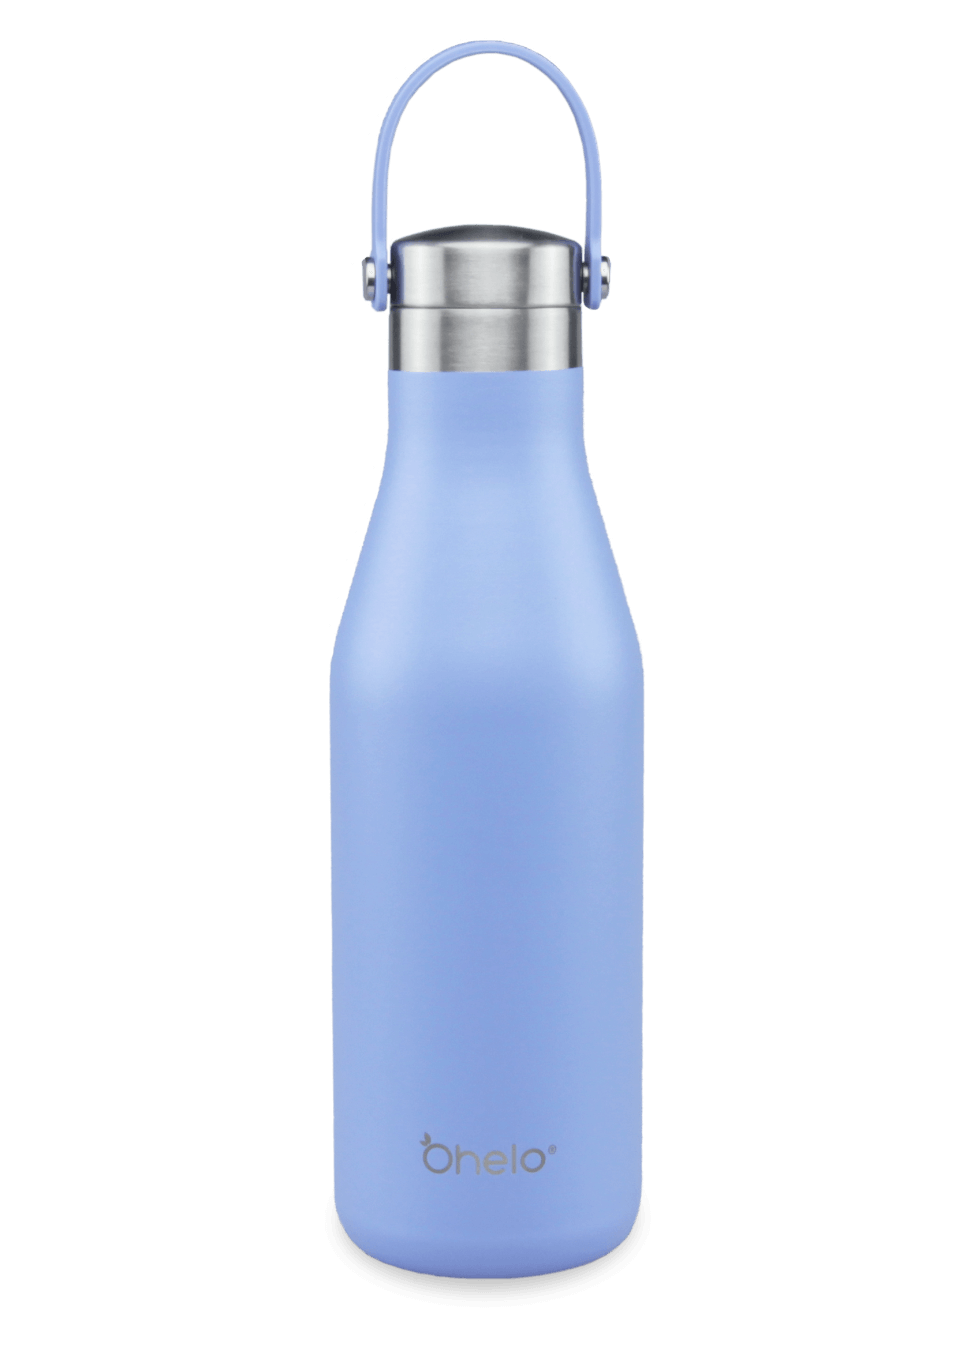 Ohelo blue reusable insulated stainless steel bottle